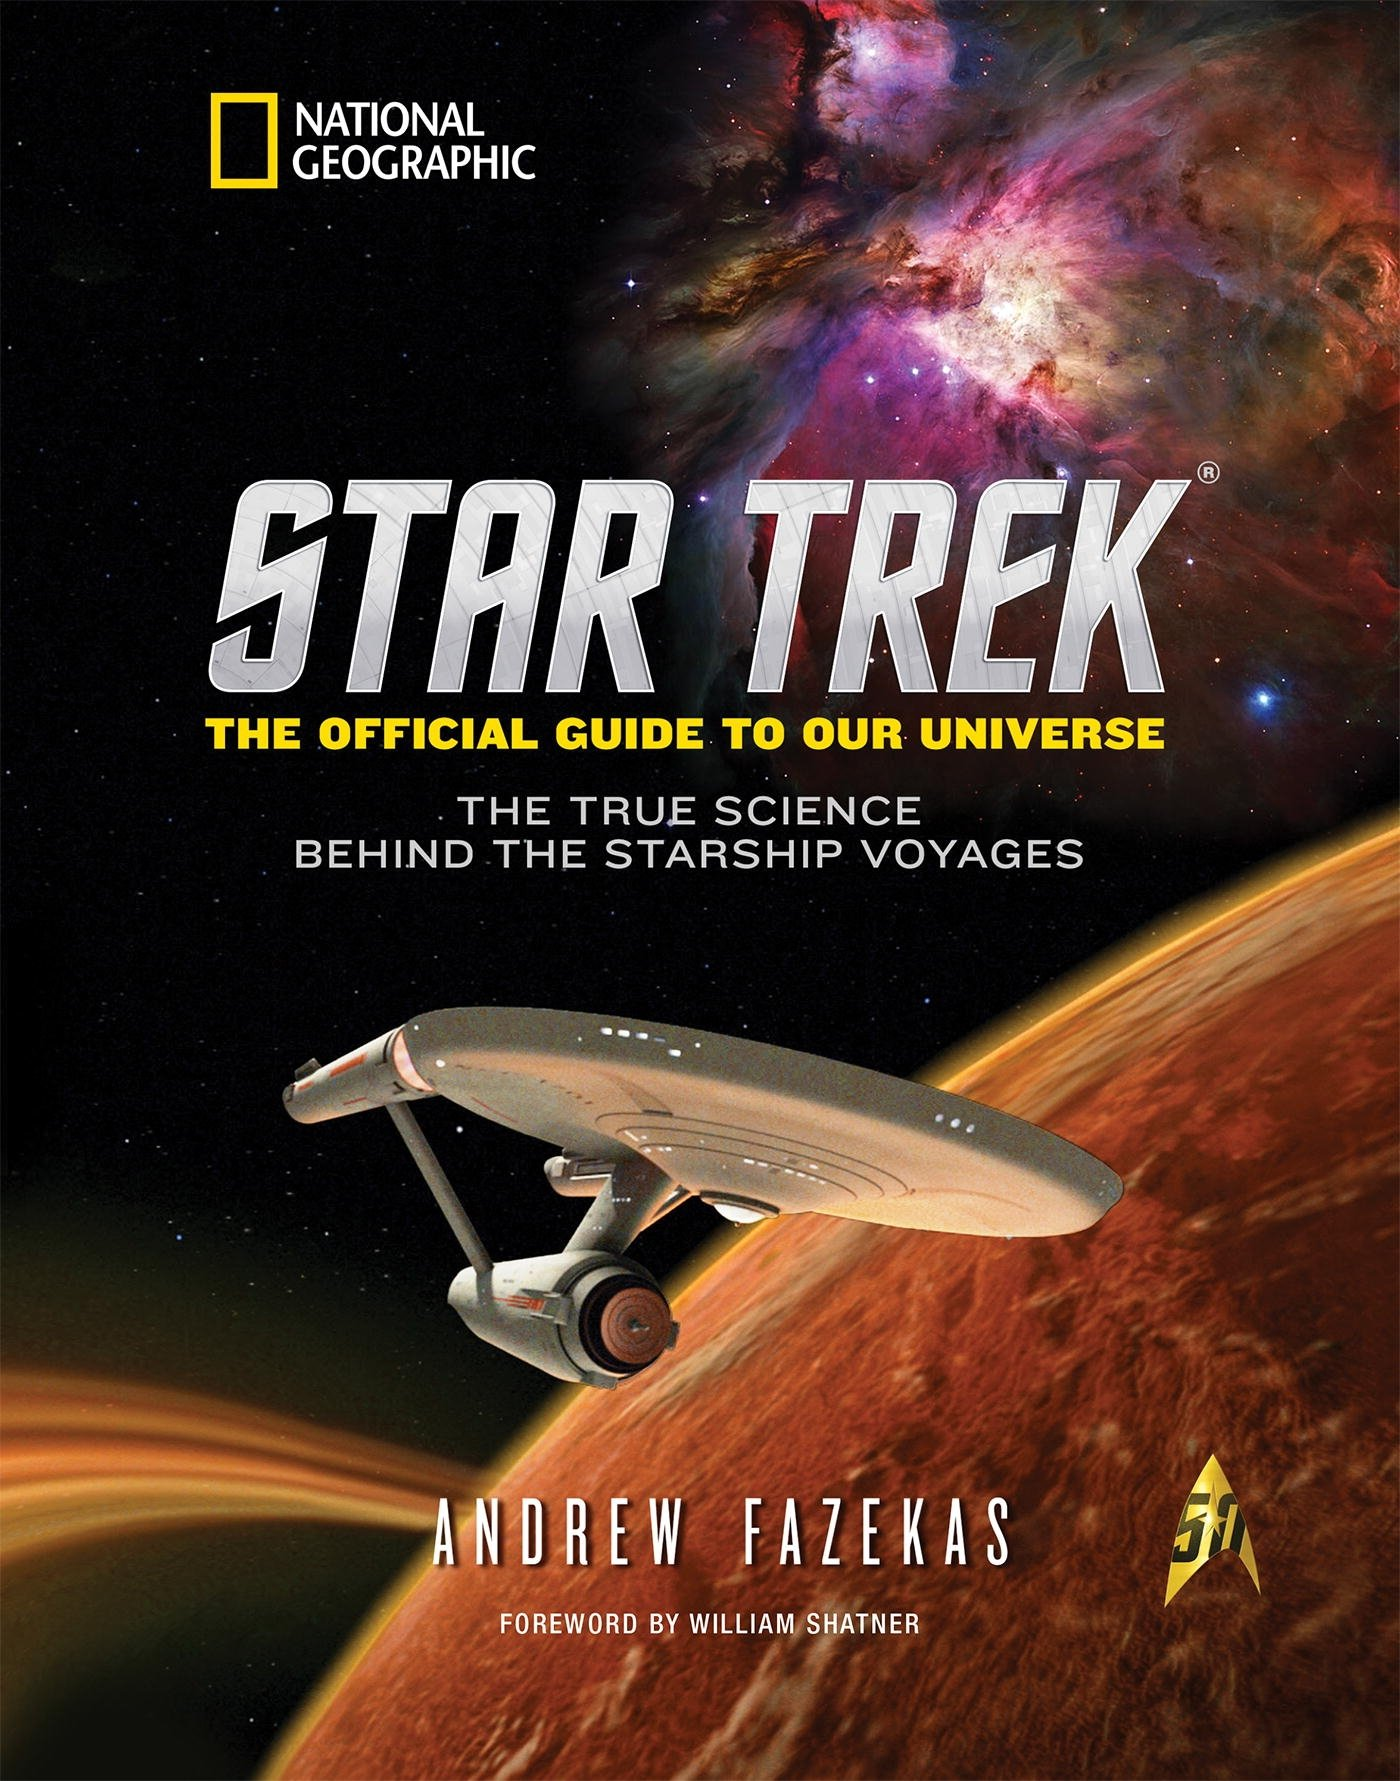 Image OfStar Trek The Official Guide To Our Universe: The True Science Behind The Starship Voyages